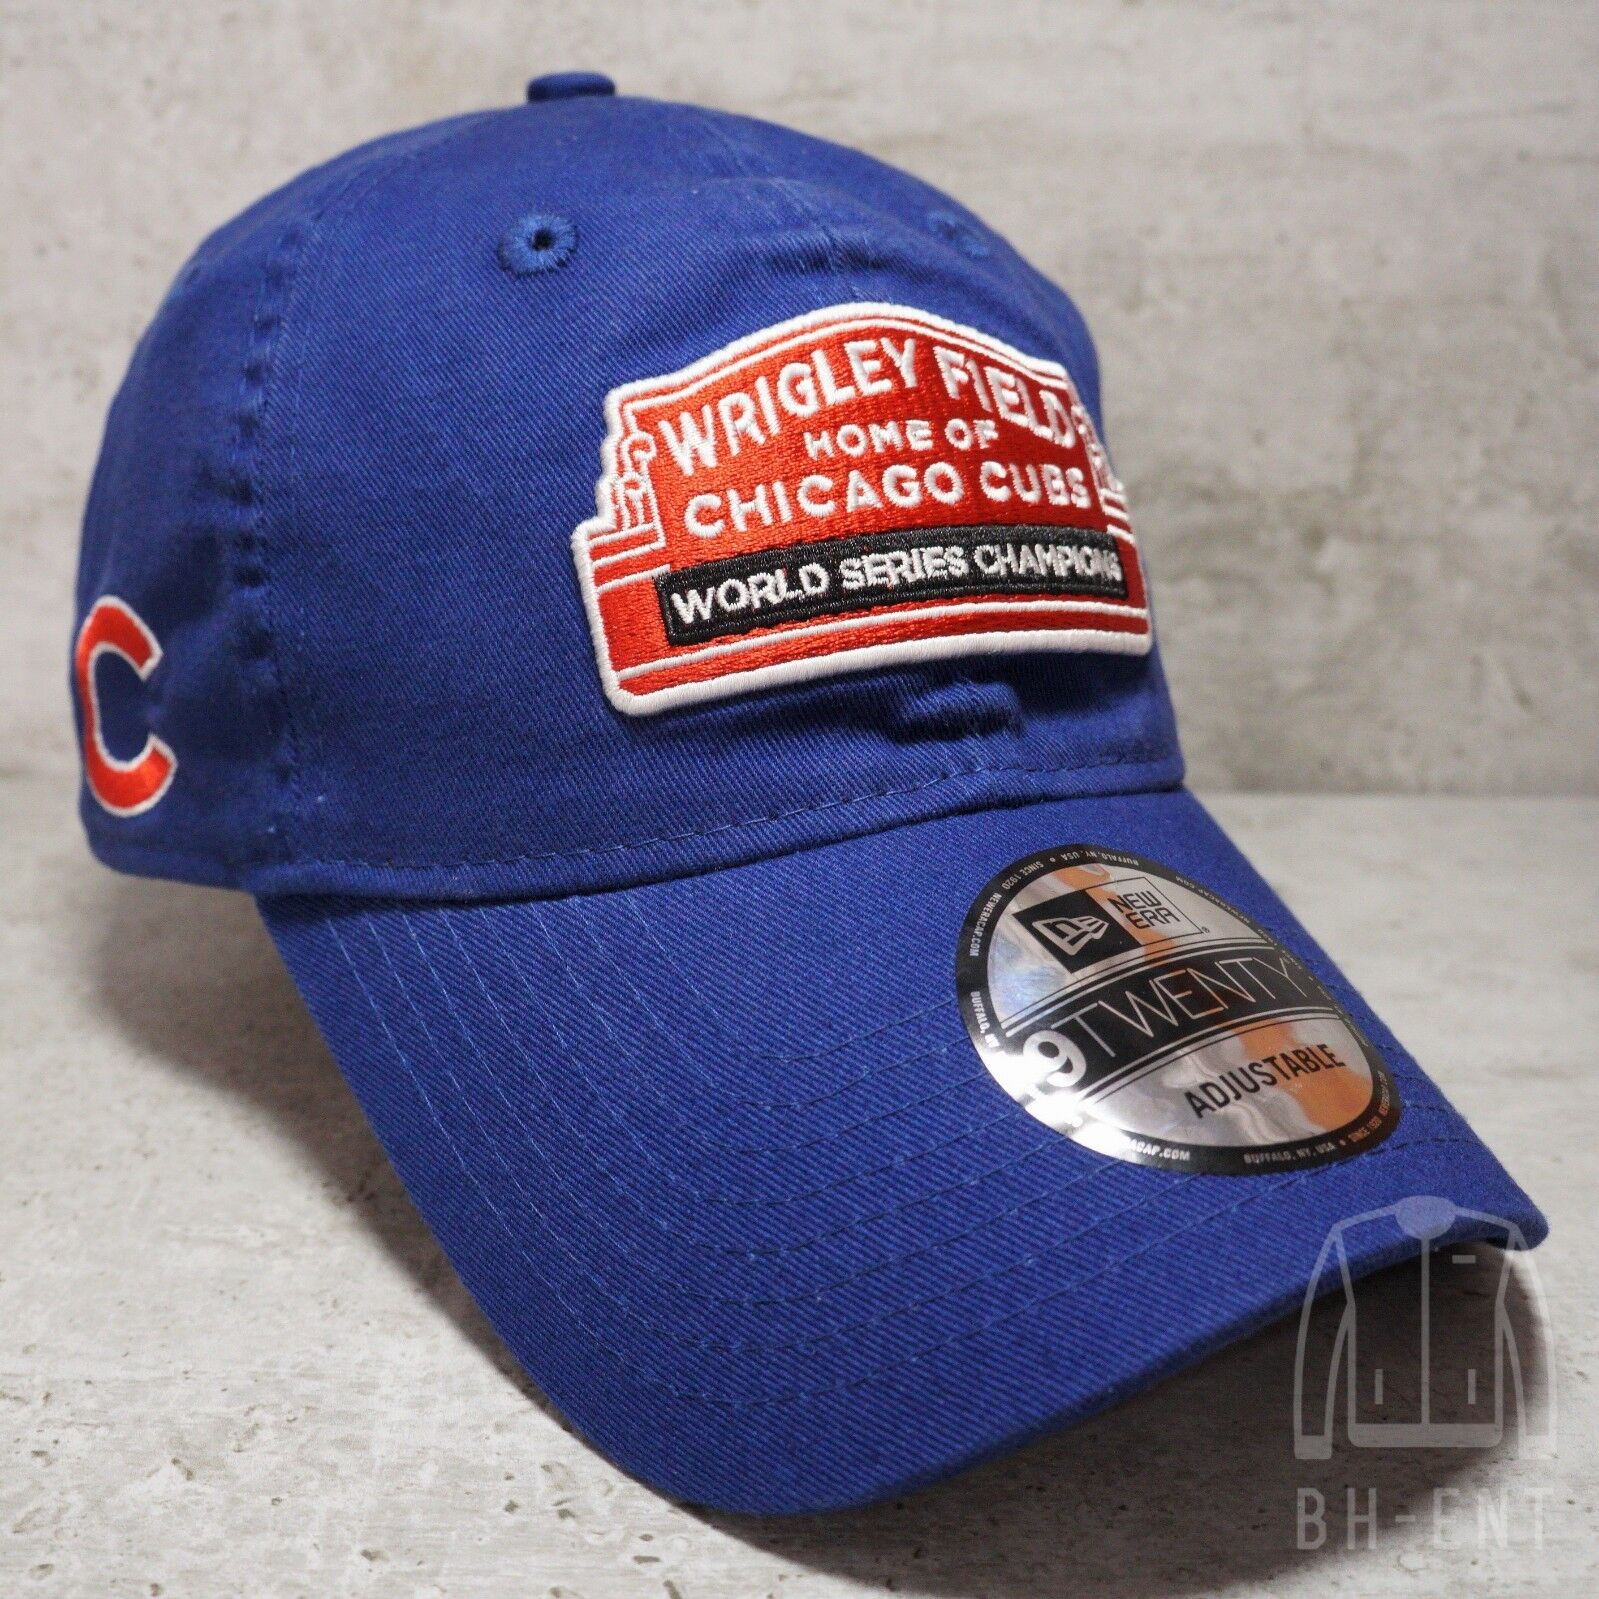 53d42fb6e3f Chicago Cubs Wrigley Field New Era 9Twenty World Series Champions Hat Jersey